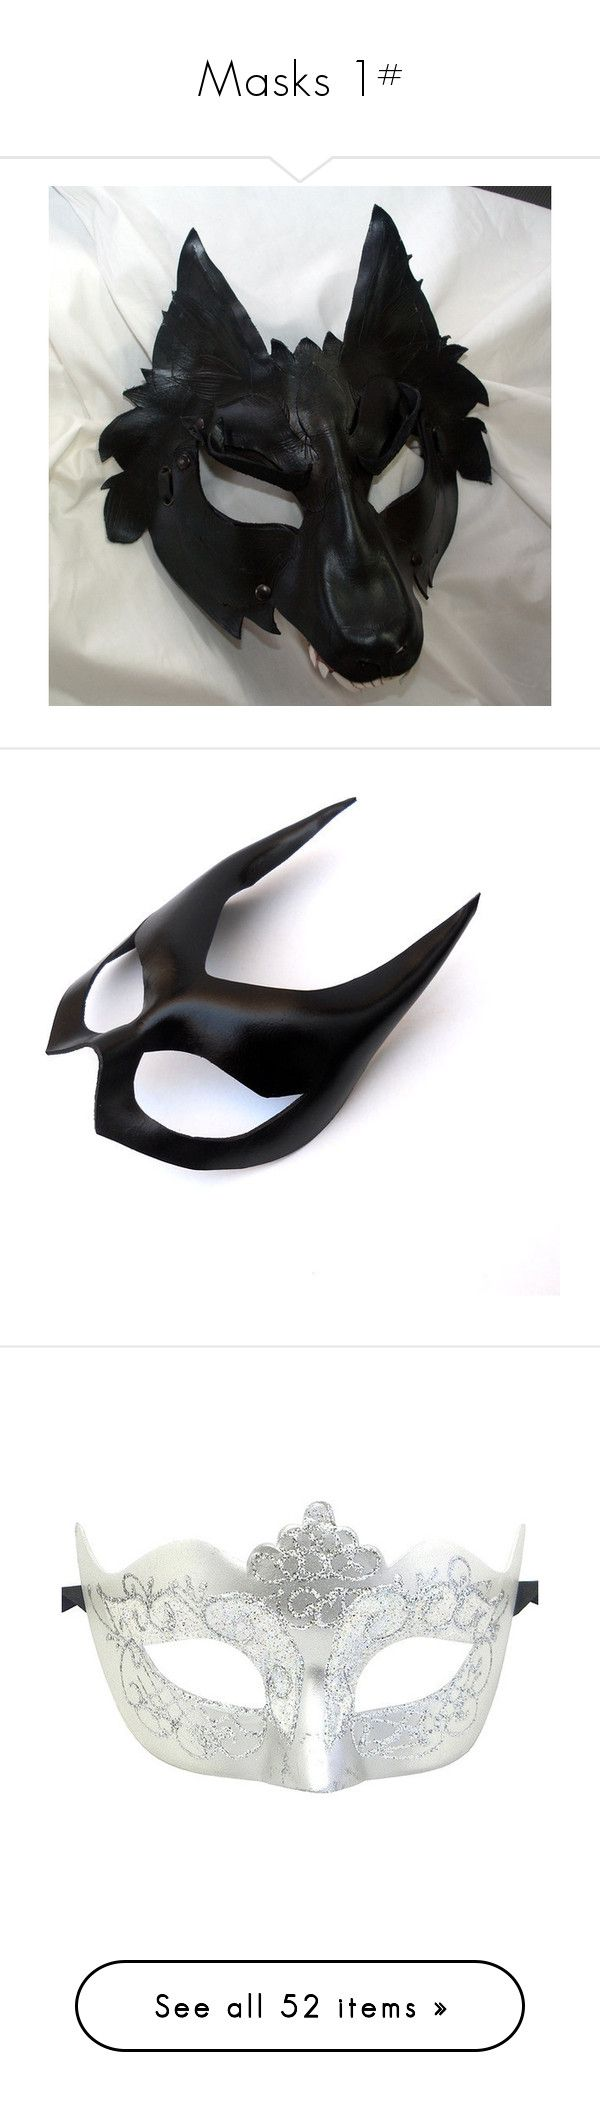 """""""Masks 1#"""" by randeemalloy ❤ liked on Polyvore featuring masks, accessories, costumes, costume, superhero cosplay costumes, catwoman halloween costume, sexy catwoman costume, masquerade costume, sexy halloween costumes and masquerade"""